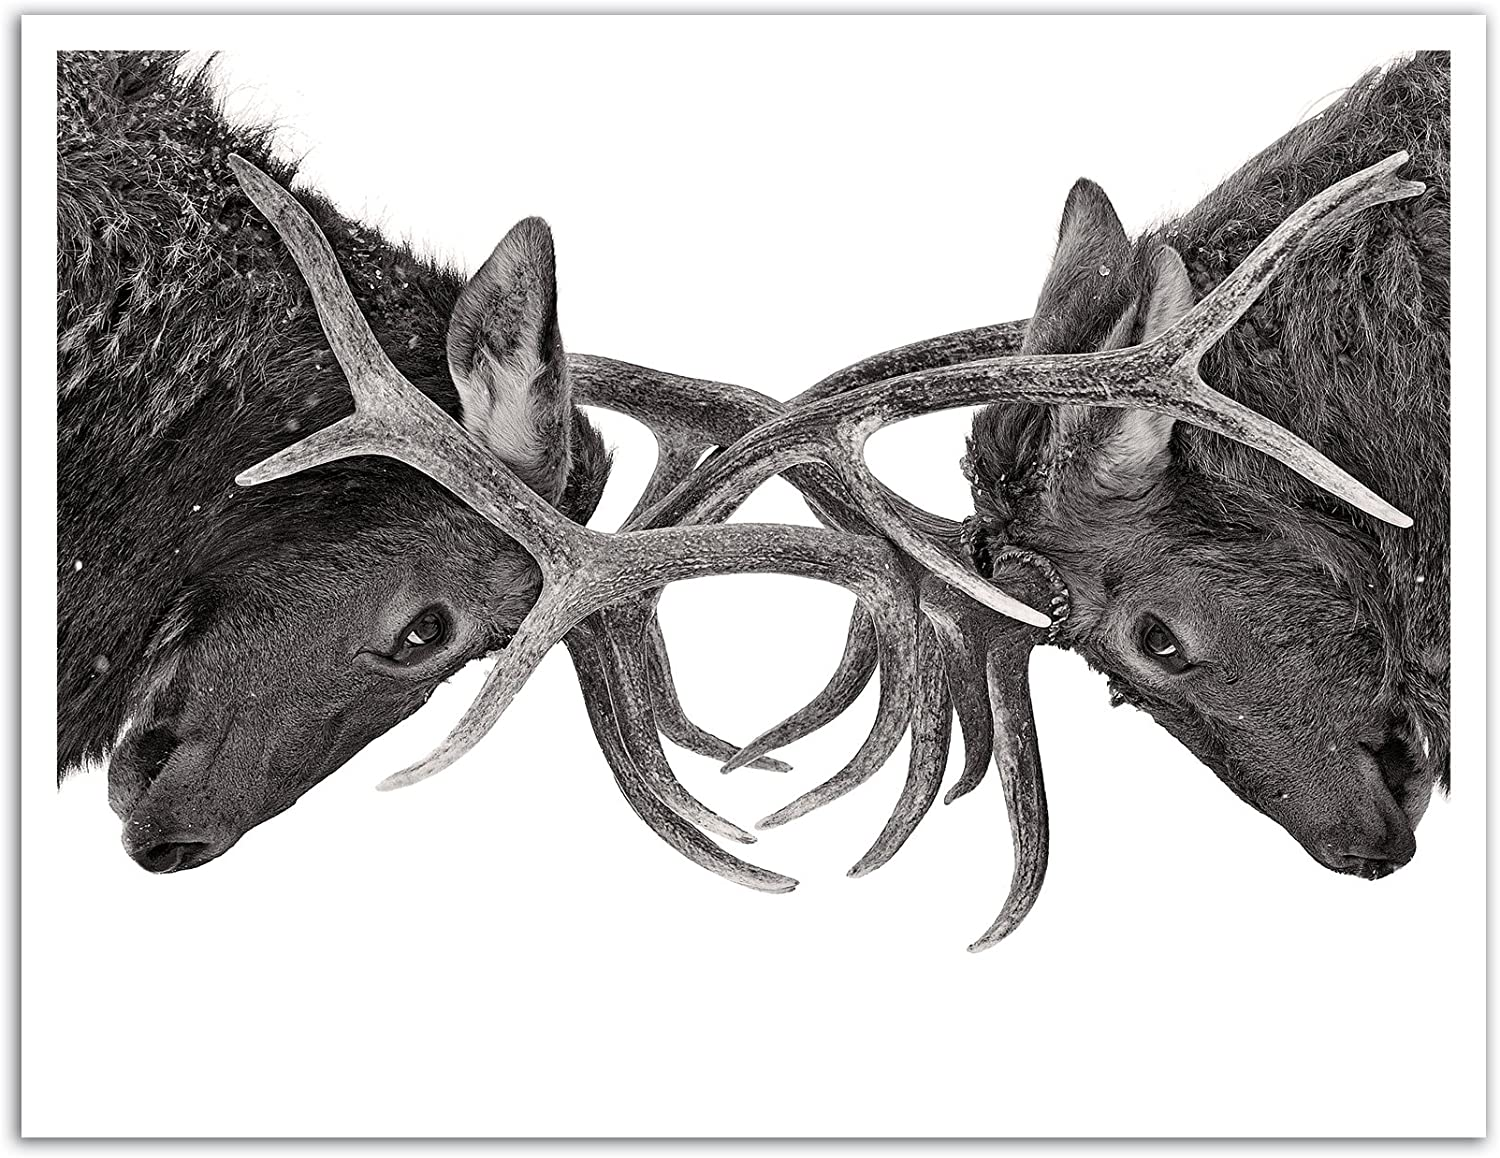 JP London POS1X887177 Jpl and Jim Cumming Present Eye to Eye Elk Reflection Nature Animal 25.75 by 19.75 Peel and Stick Fully Removable Wall Poster Mural